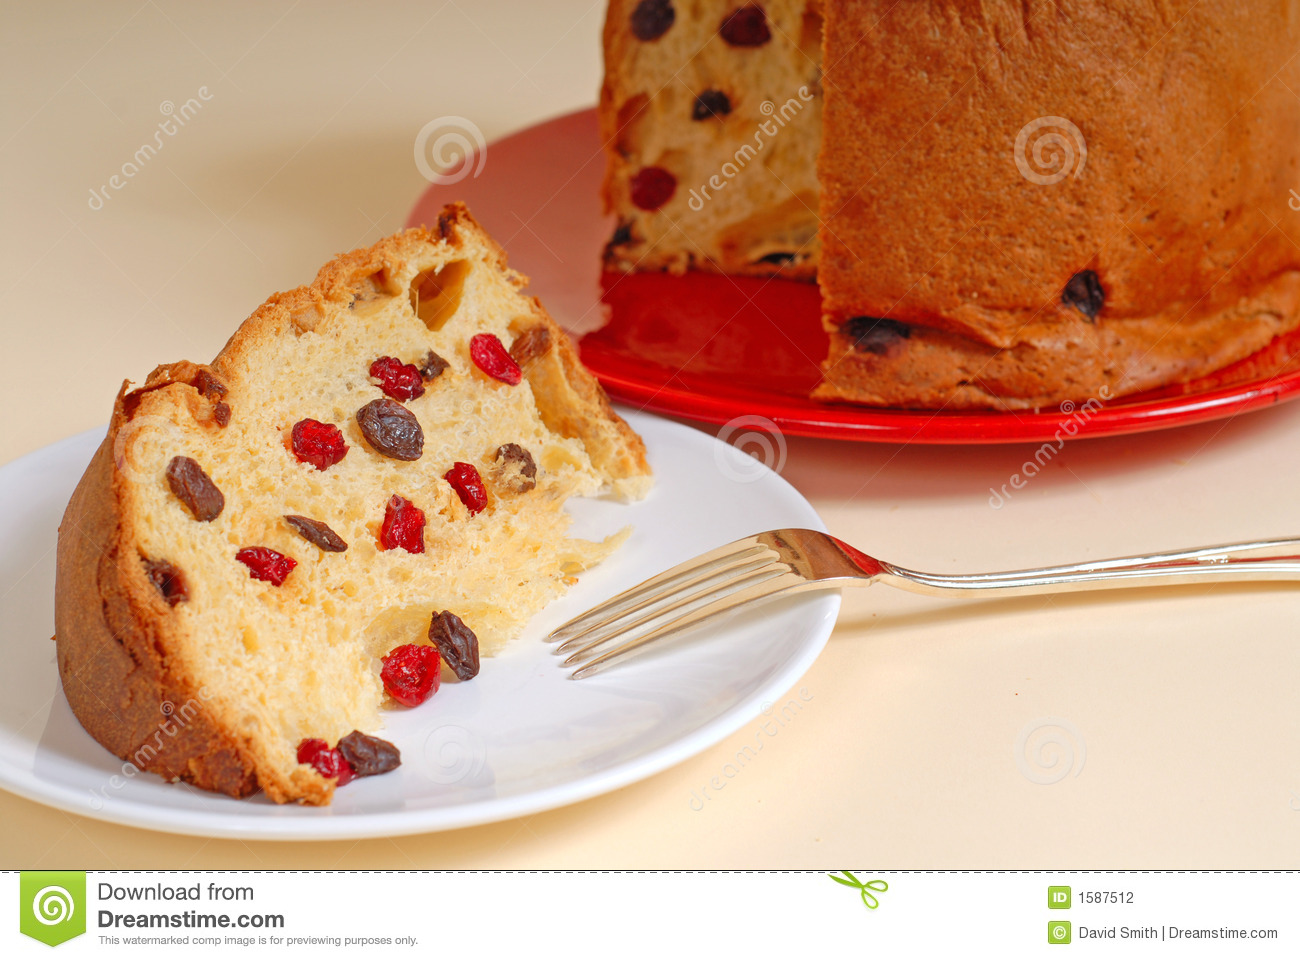 Italian panettone christmas bread with tan background stock photography image 1587512 - Make delicious sweet bread christmas ...